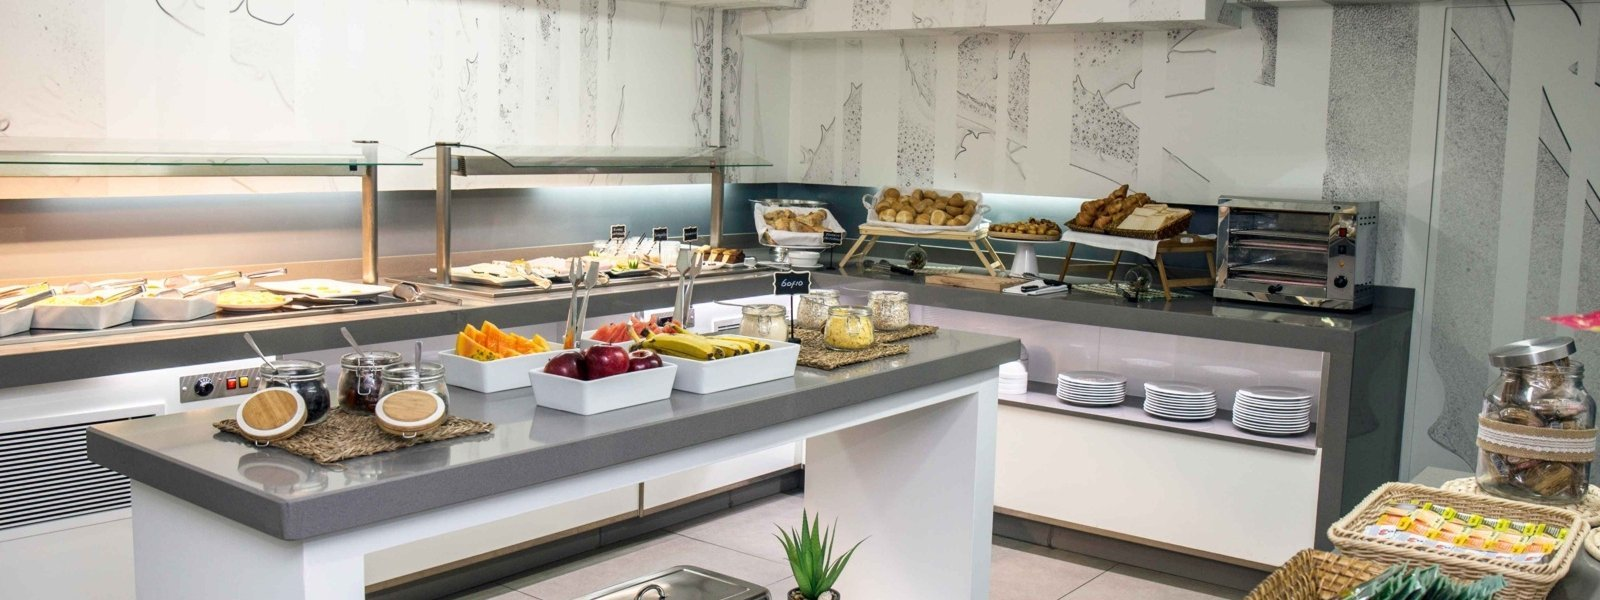 Breakfast Buffet | Hotel Aloe Canteras